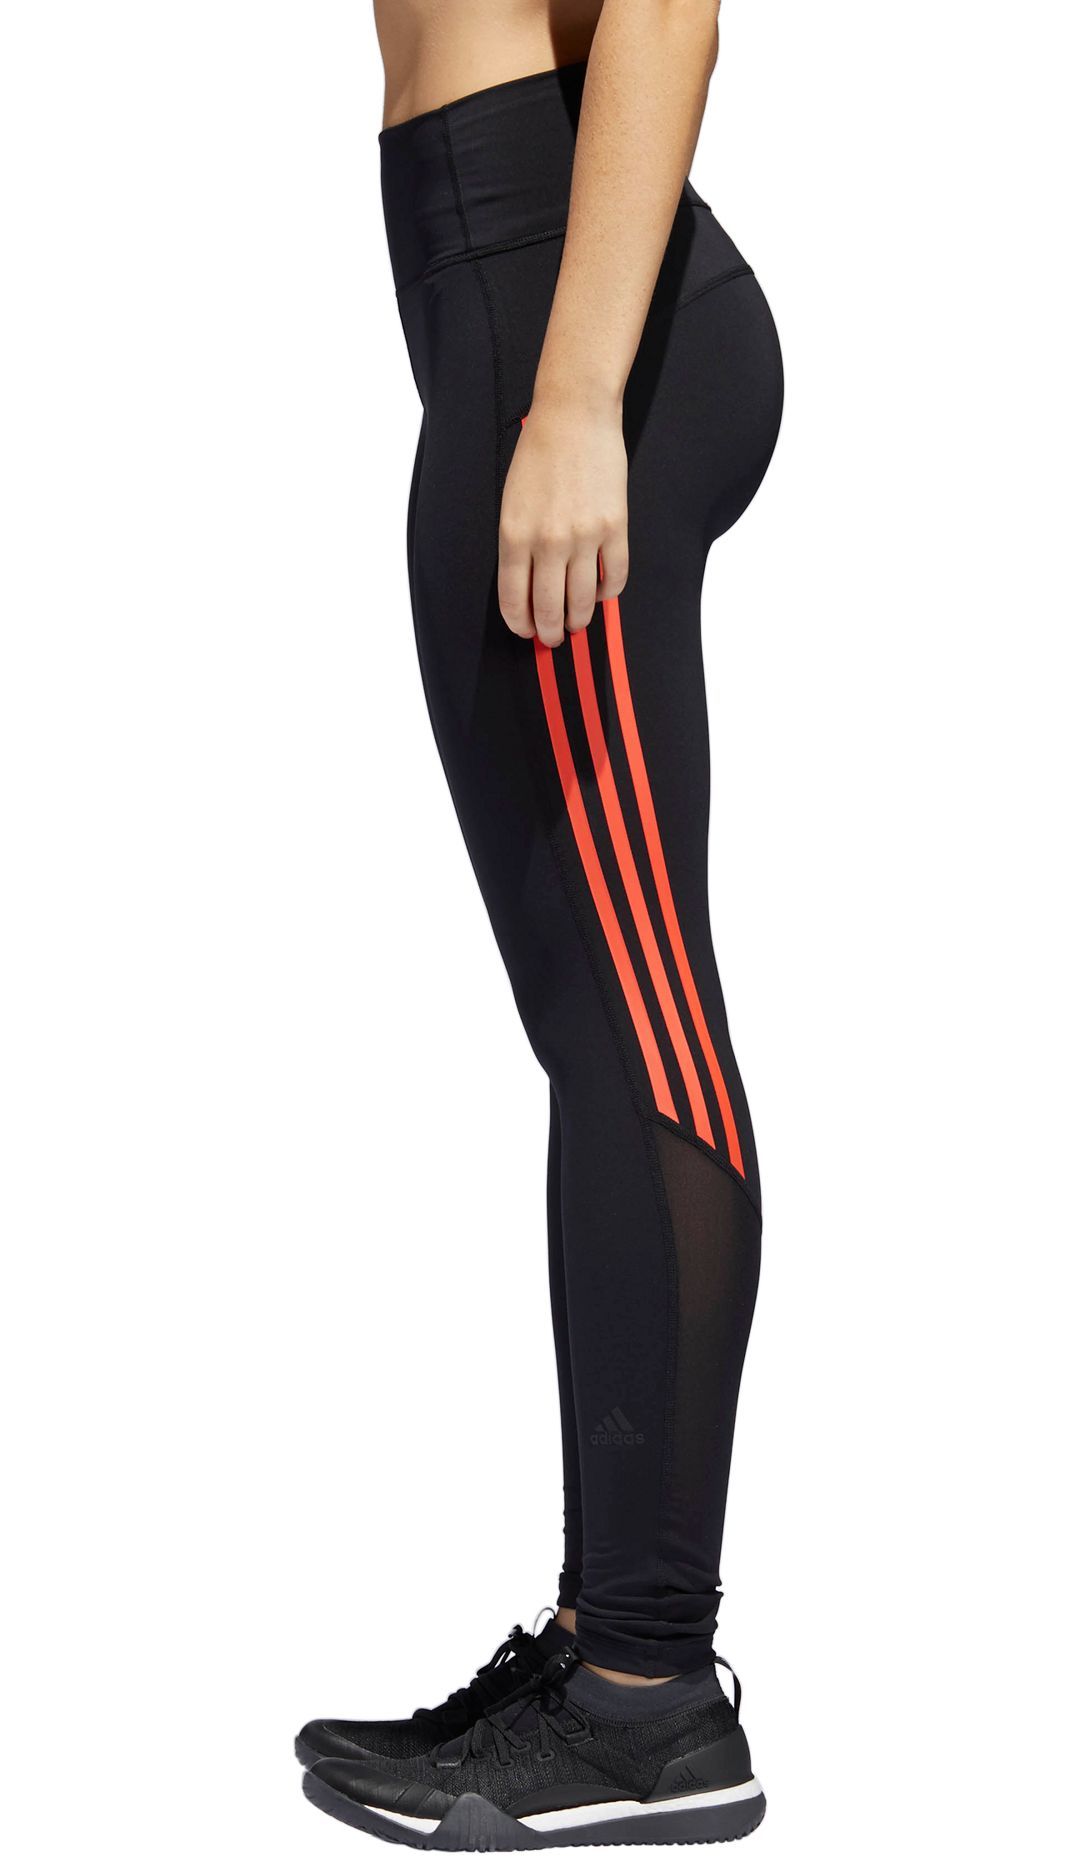 a5cb370a737b3 adidas Women's Believe This 3-Stripe 7/8 Training Tights | DICK'S ...